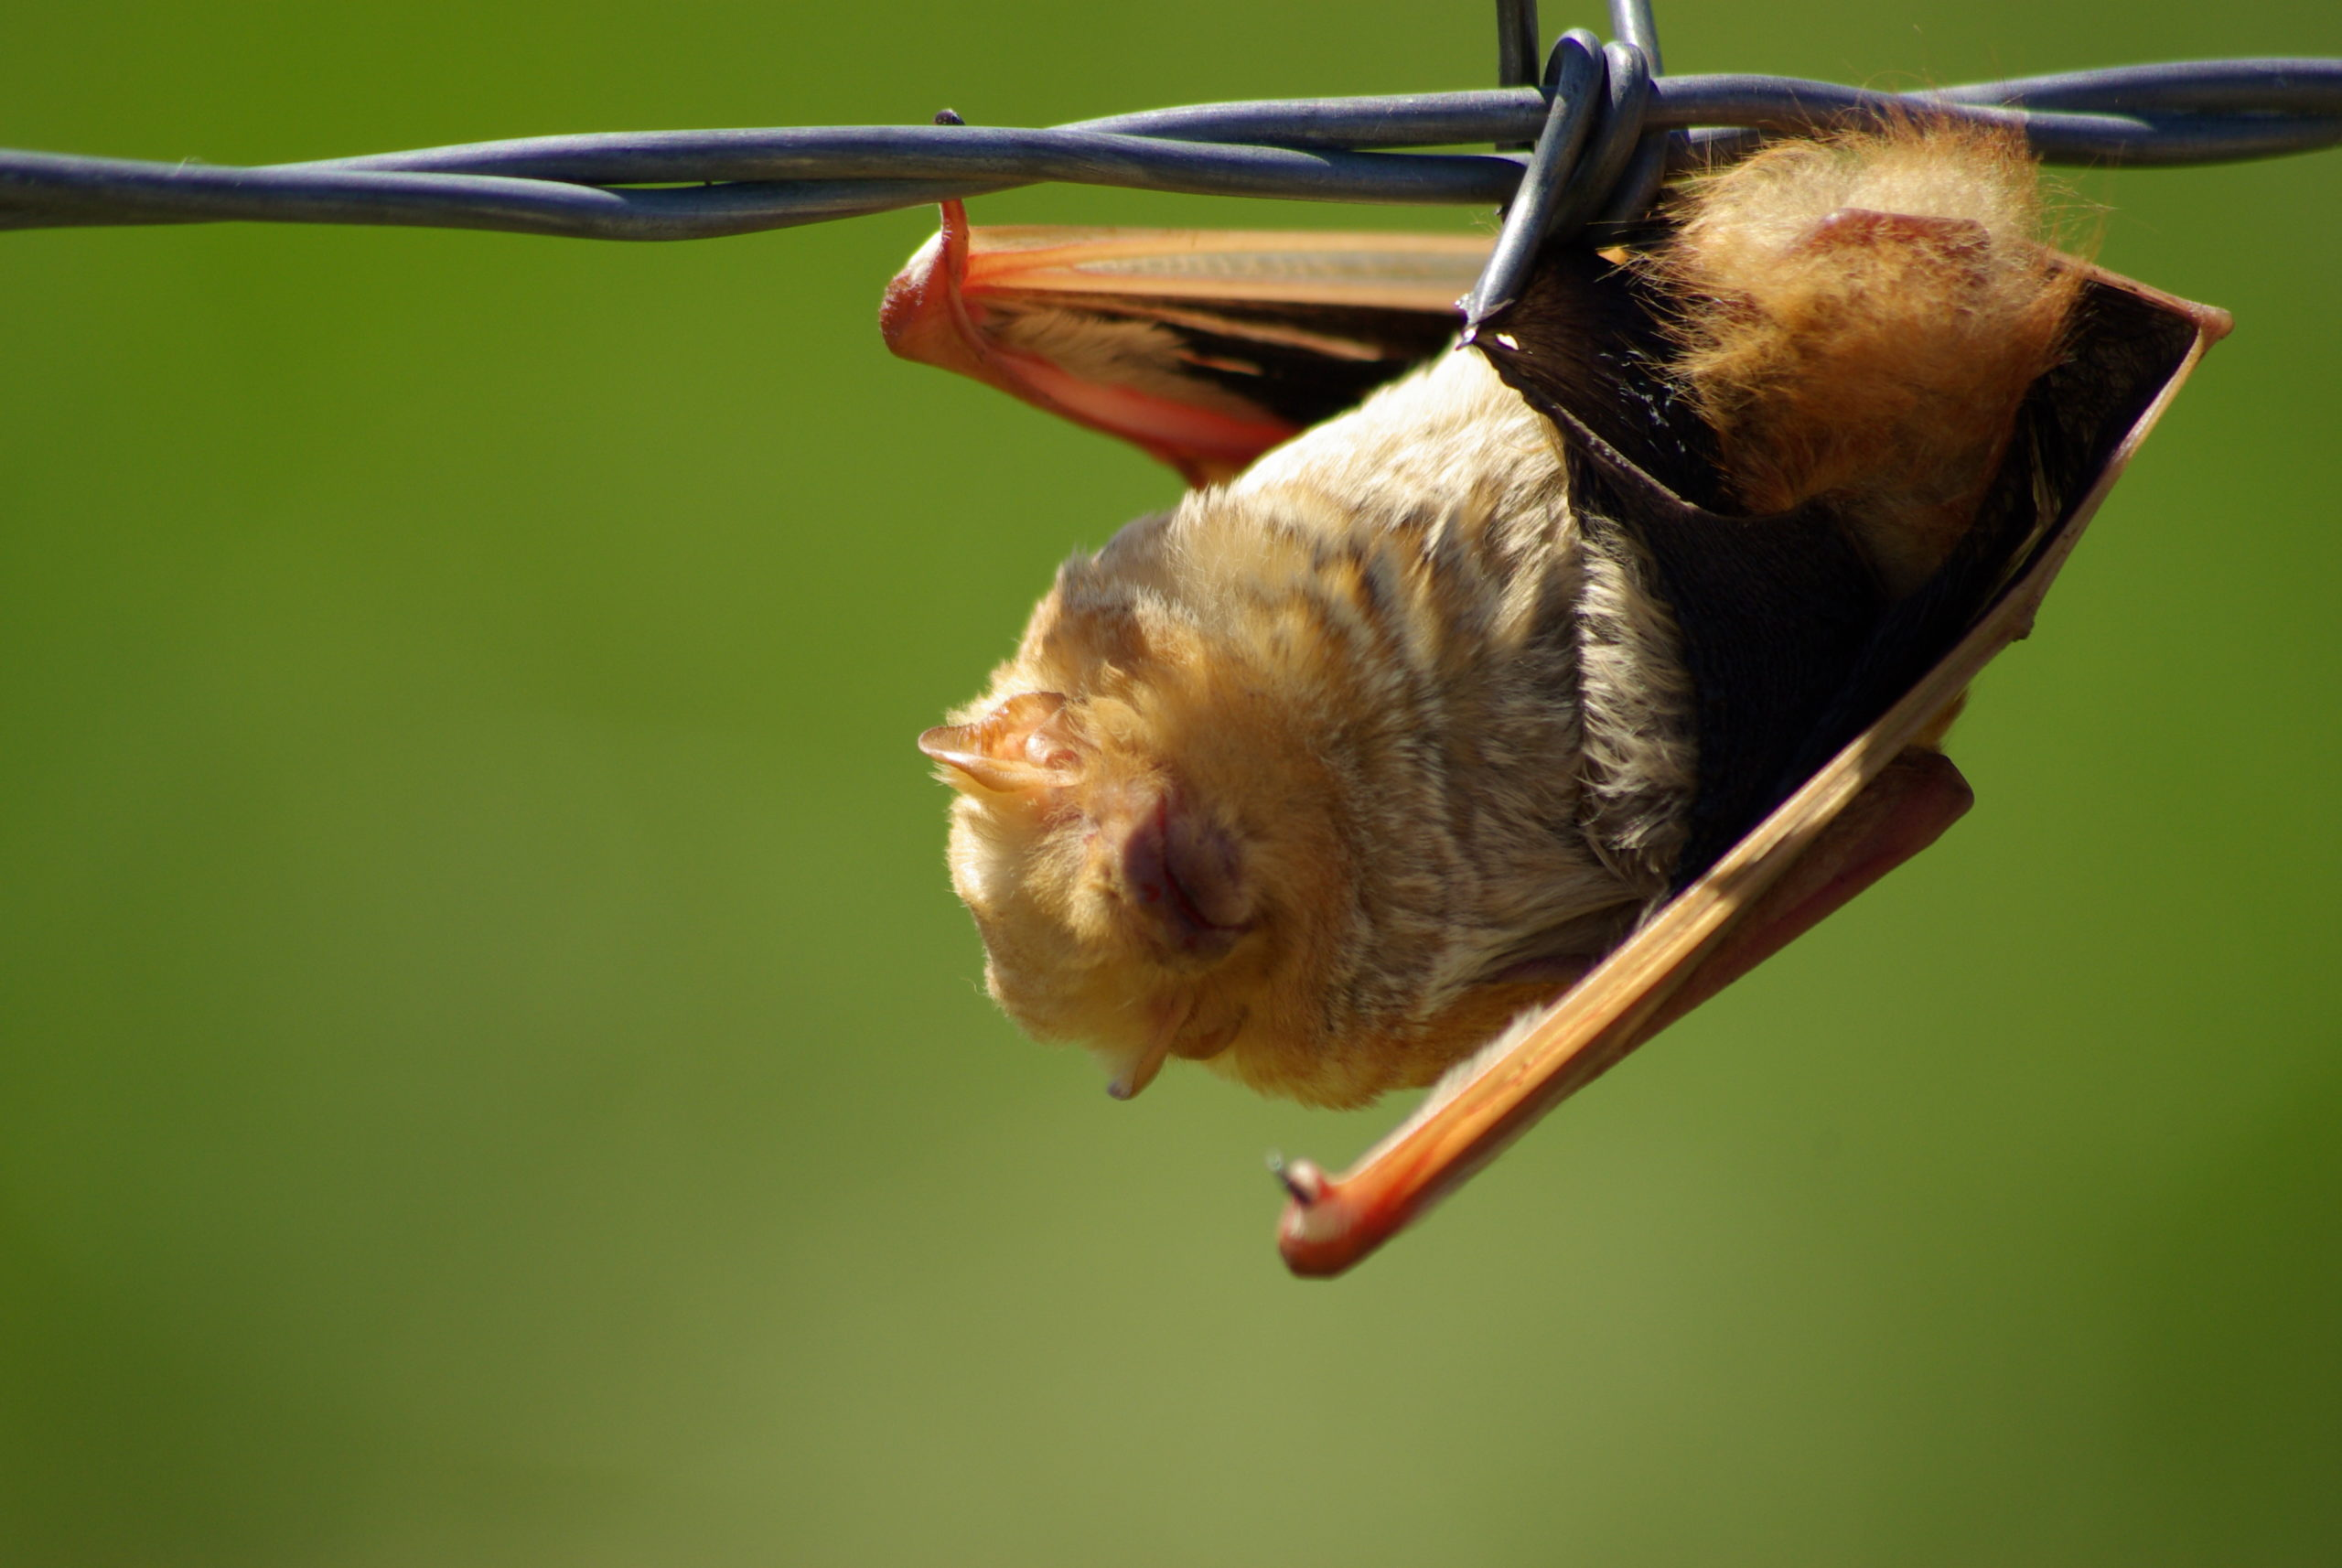 Image of the western red bat